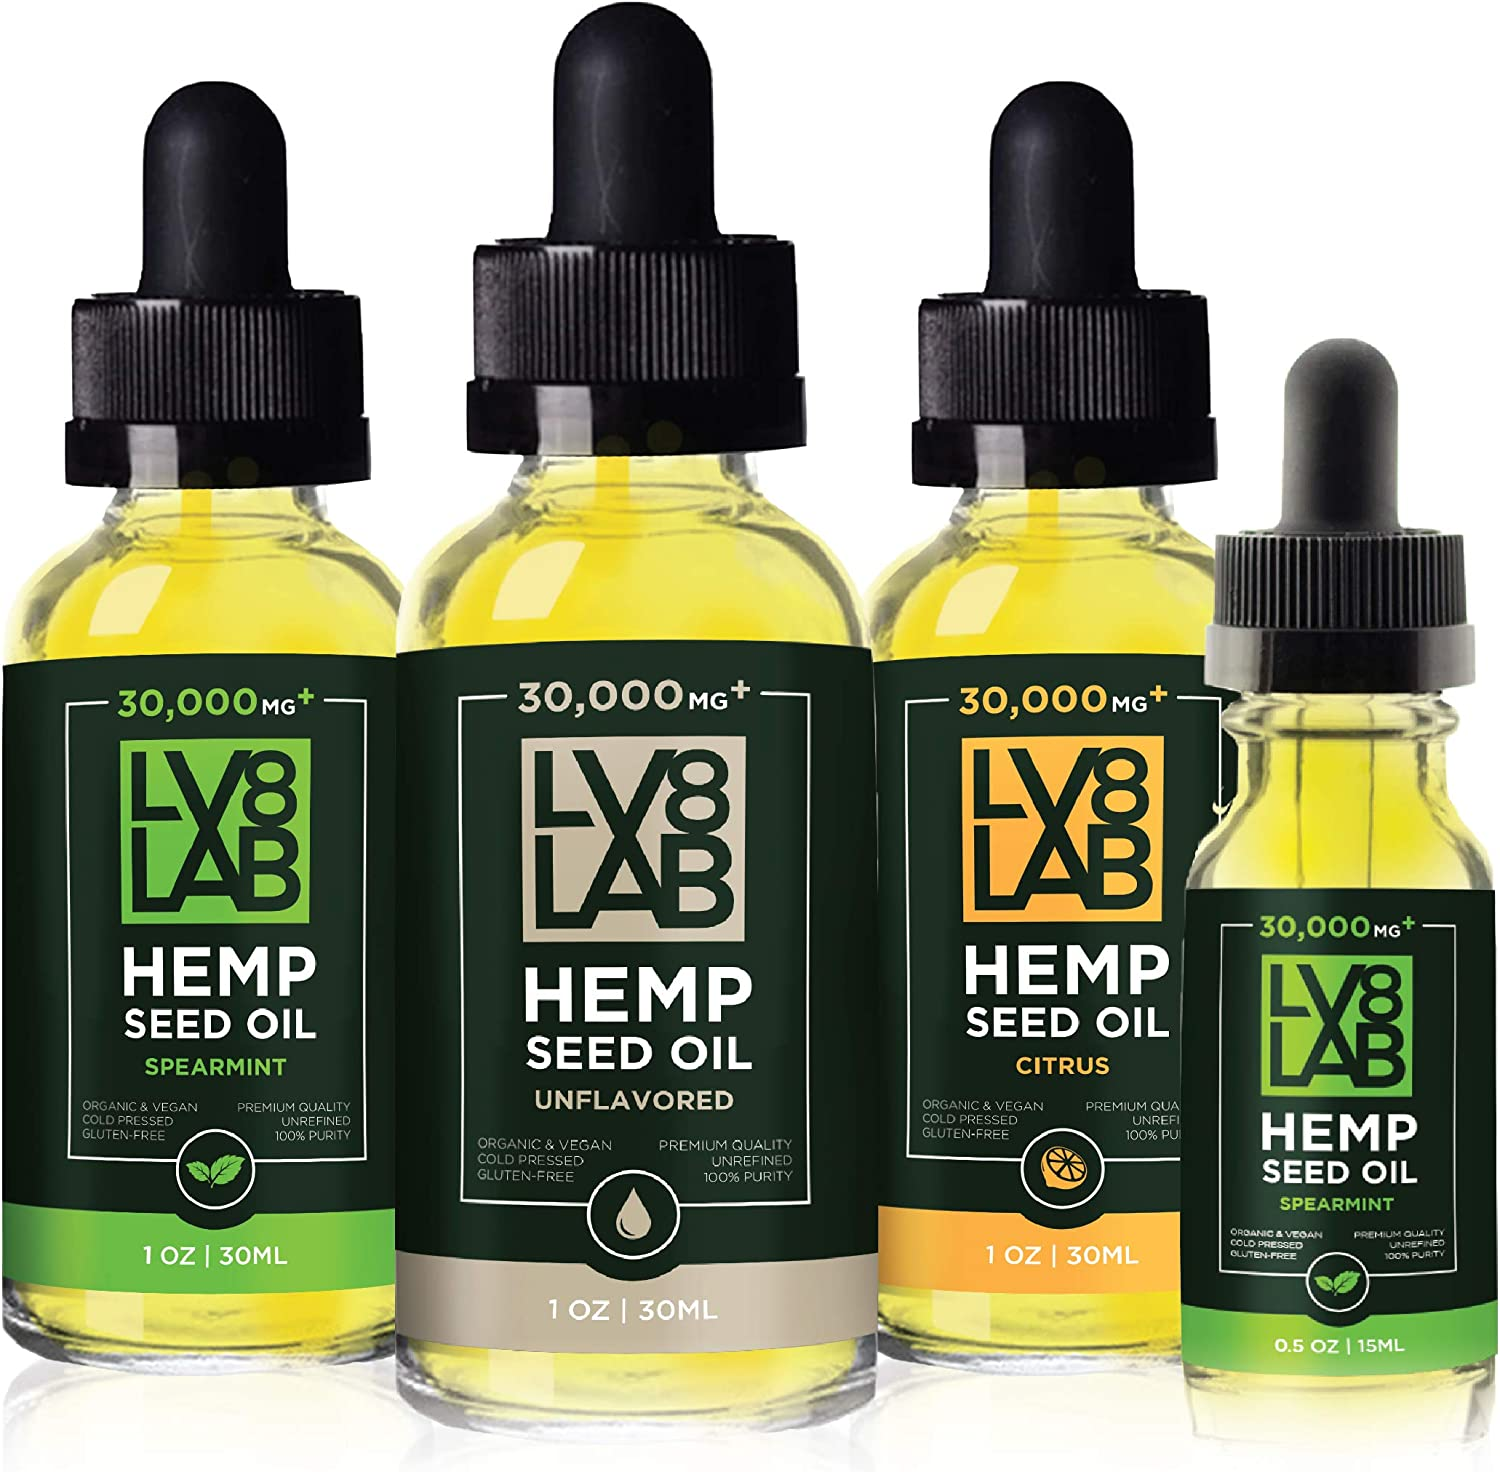 LV8 LAB 30 000mg Hemp OFFer Oil Natural USA latest with Organic in Om Made